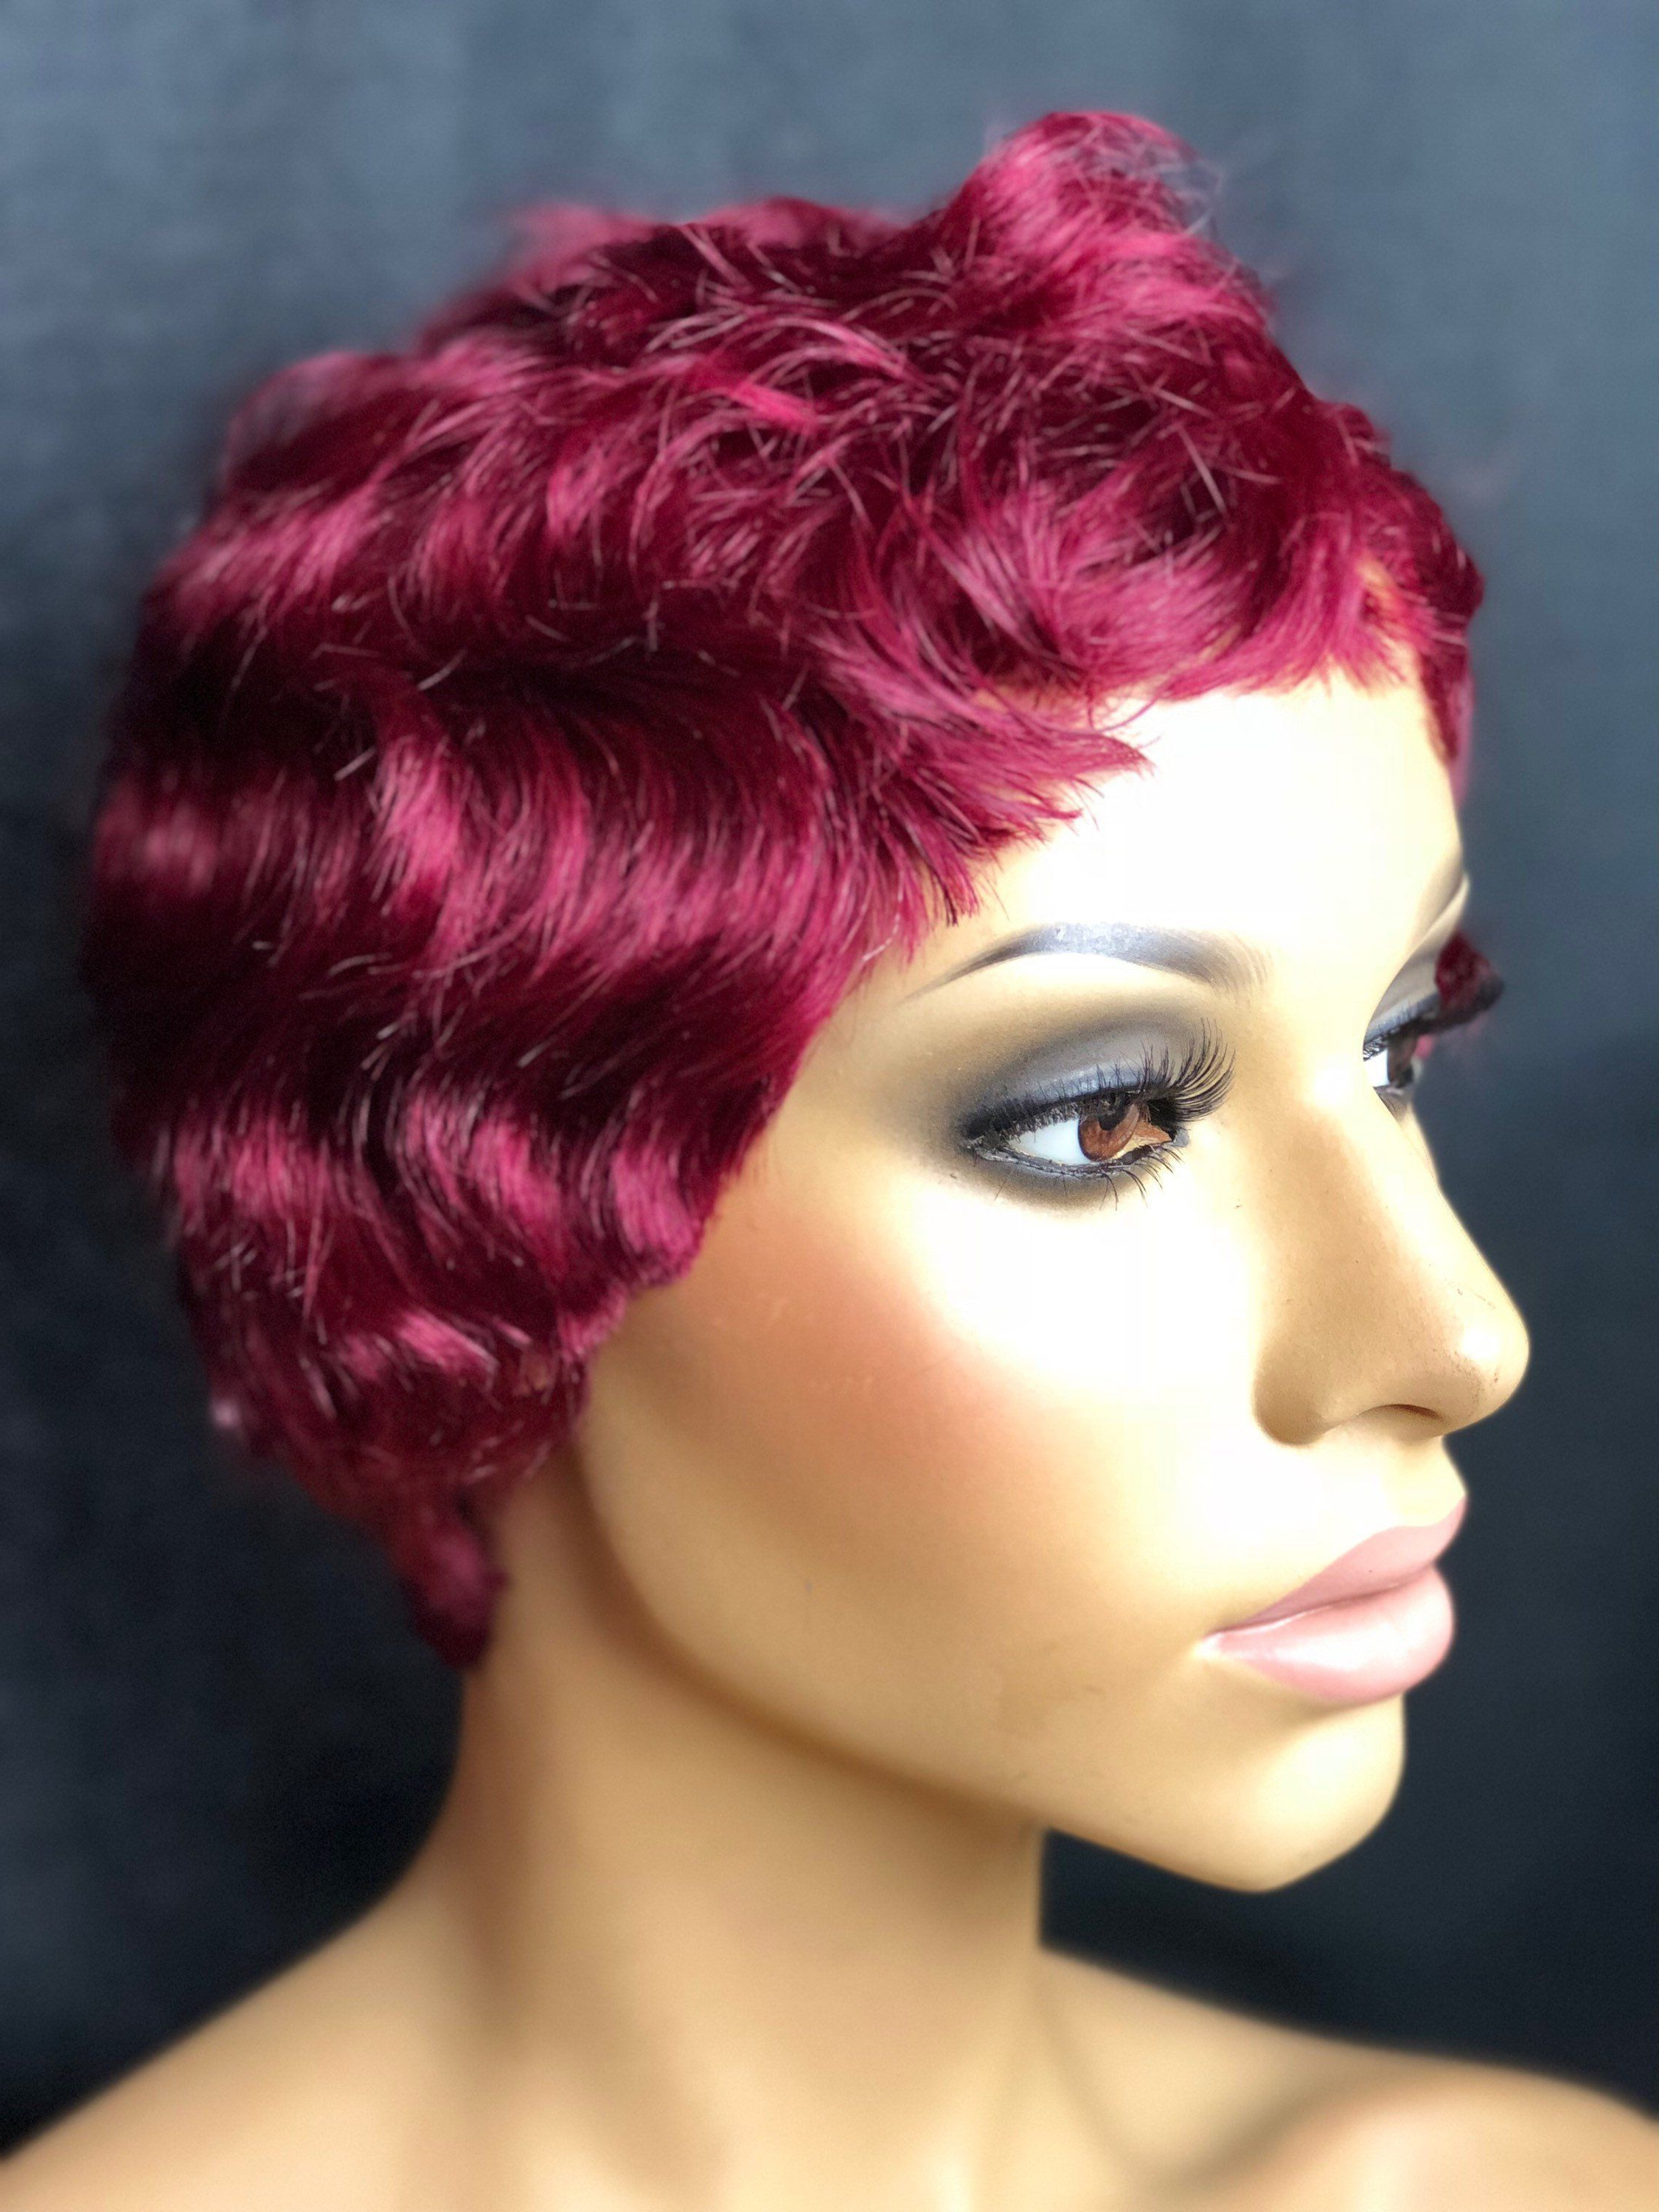 Magenta Red Short Pixie Haircut Wig | My Hairstyles Collections In Red Short Hairstyles (View 16 of 25)